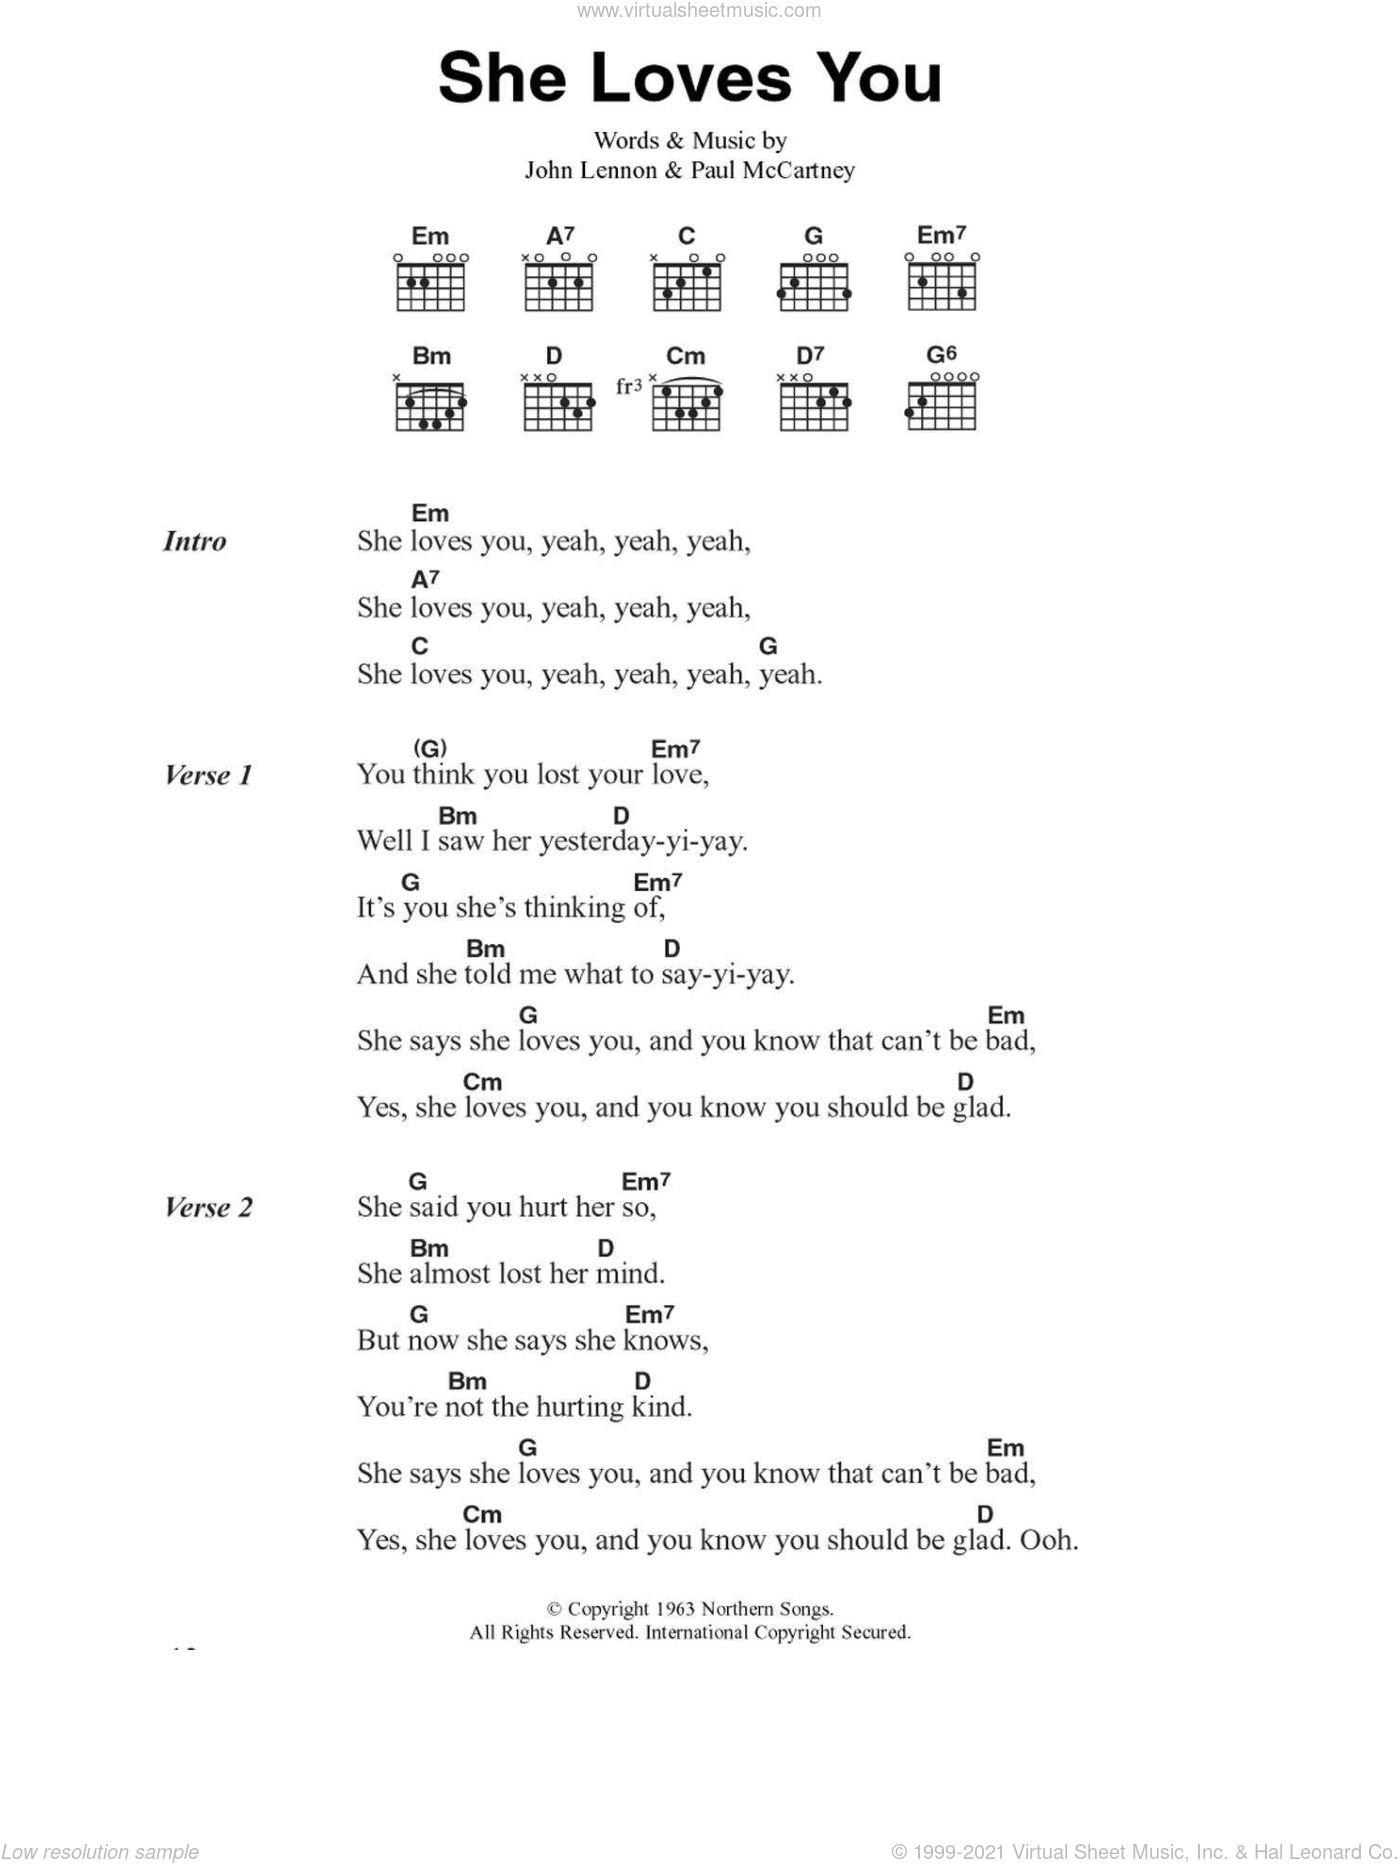 She Loves You sheet music for guitar (chords) by The Beatles, John Lennon and Paul McCartney, intermediate skill level